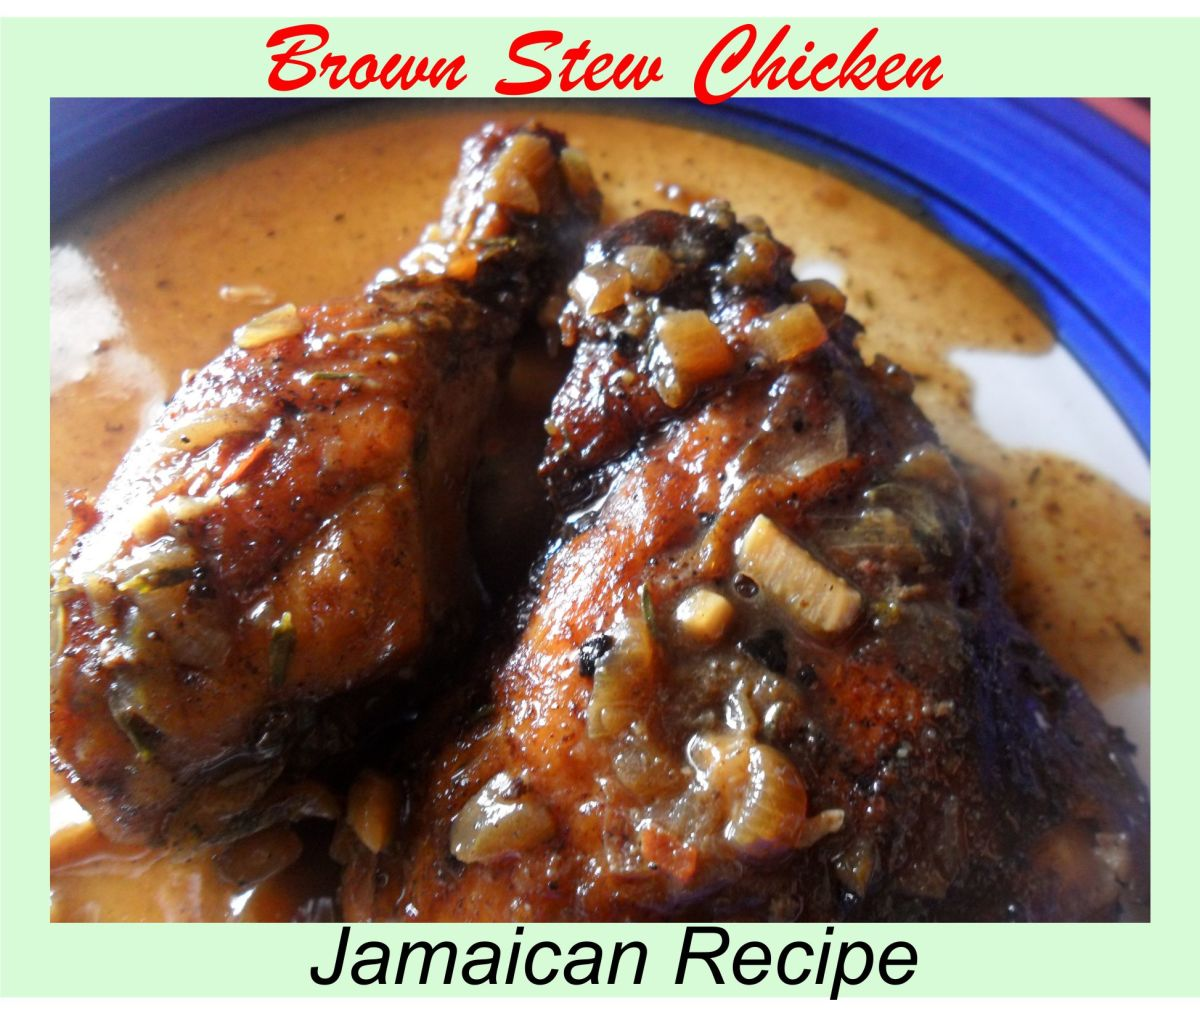 Brown Stew Chicken Jamaican Recipe